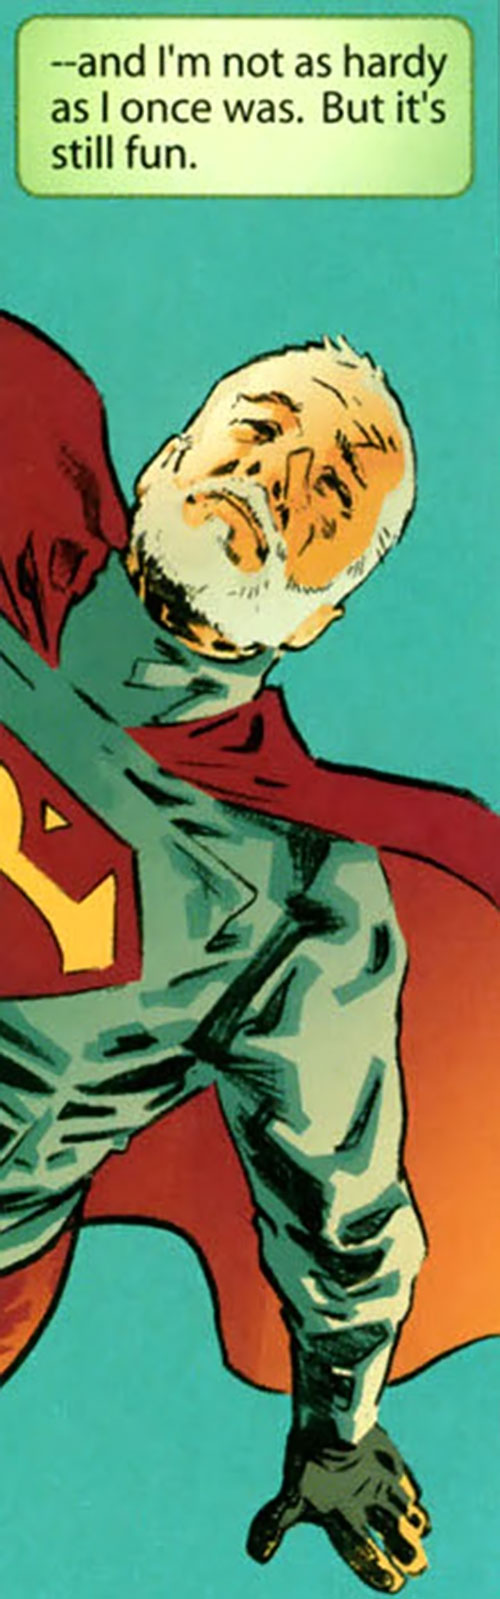 Superman (DC Comics) (Busiek Secret Identity version) as a bearded older man